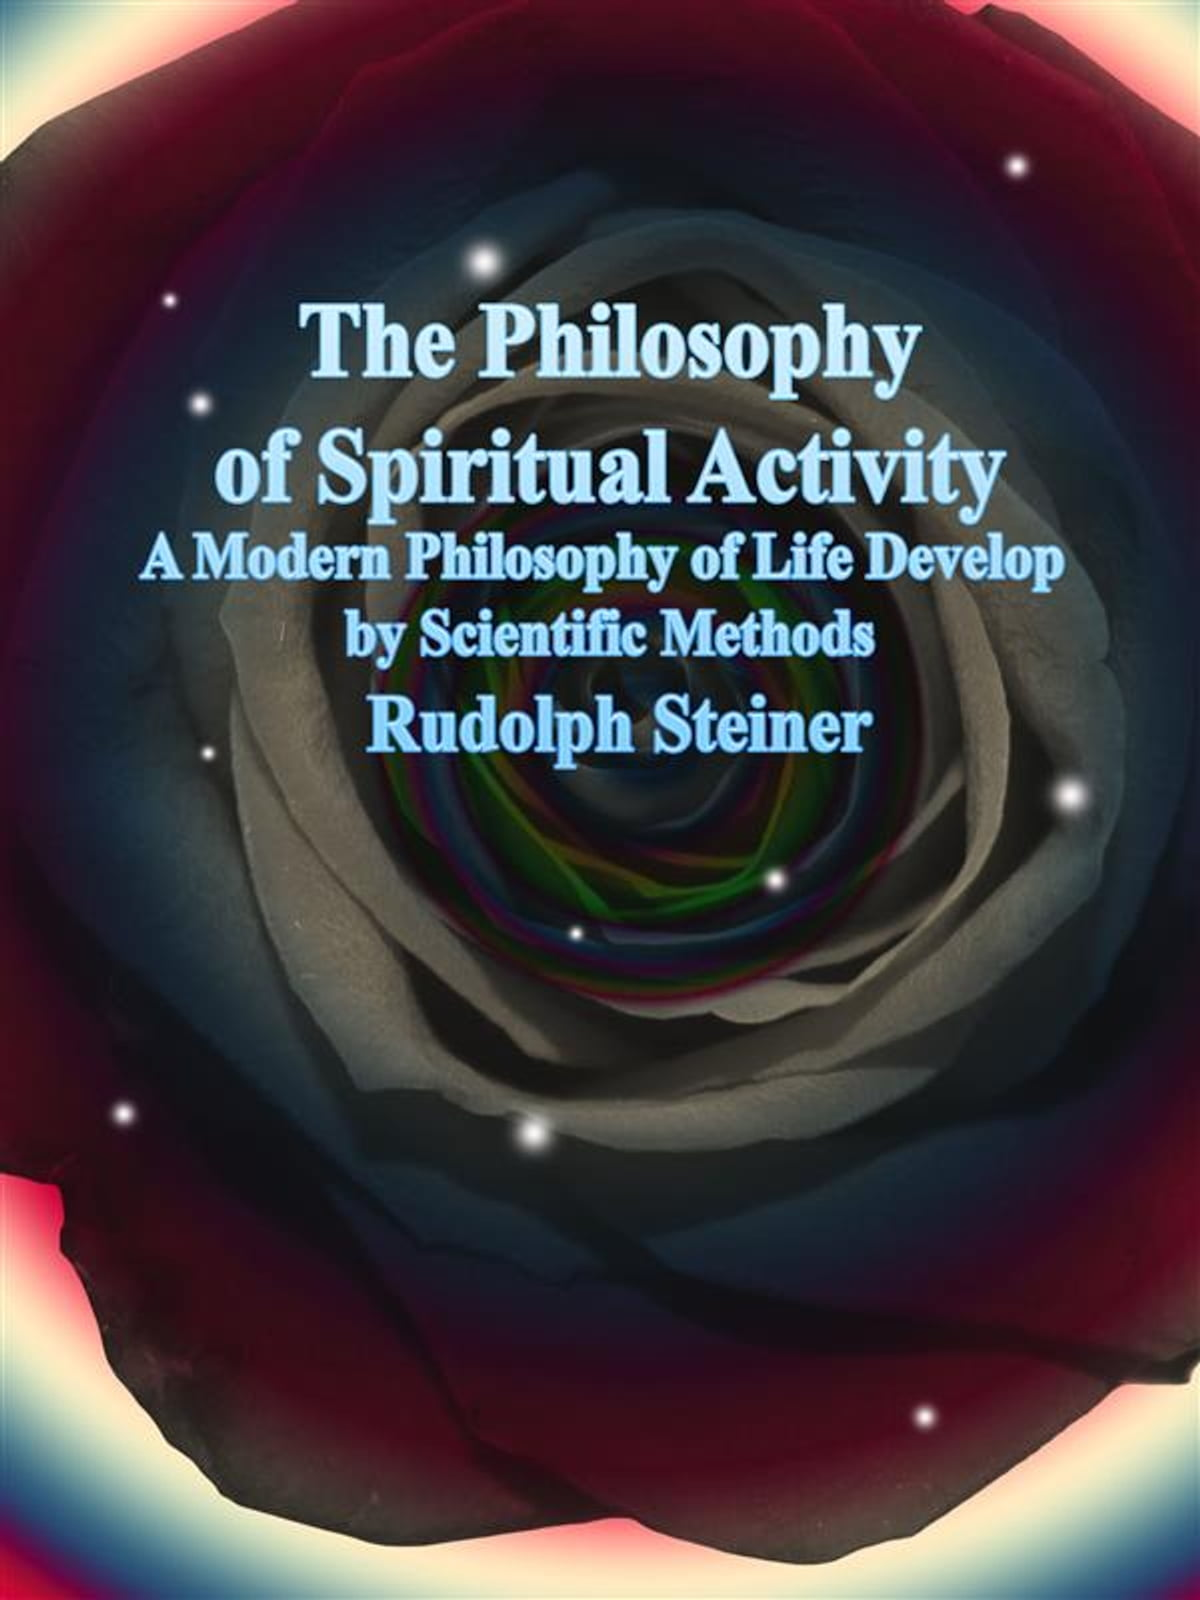 The Philosophy of Spiritual Activity eBook by Rudolph Steiner -  9788826098951 | Rakuten Kobo